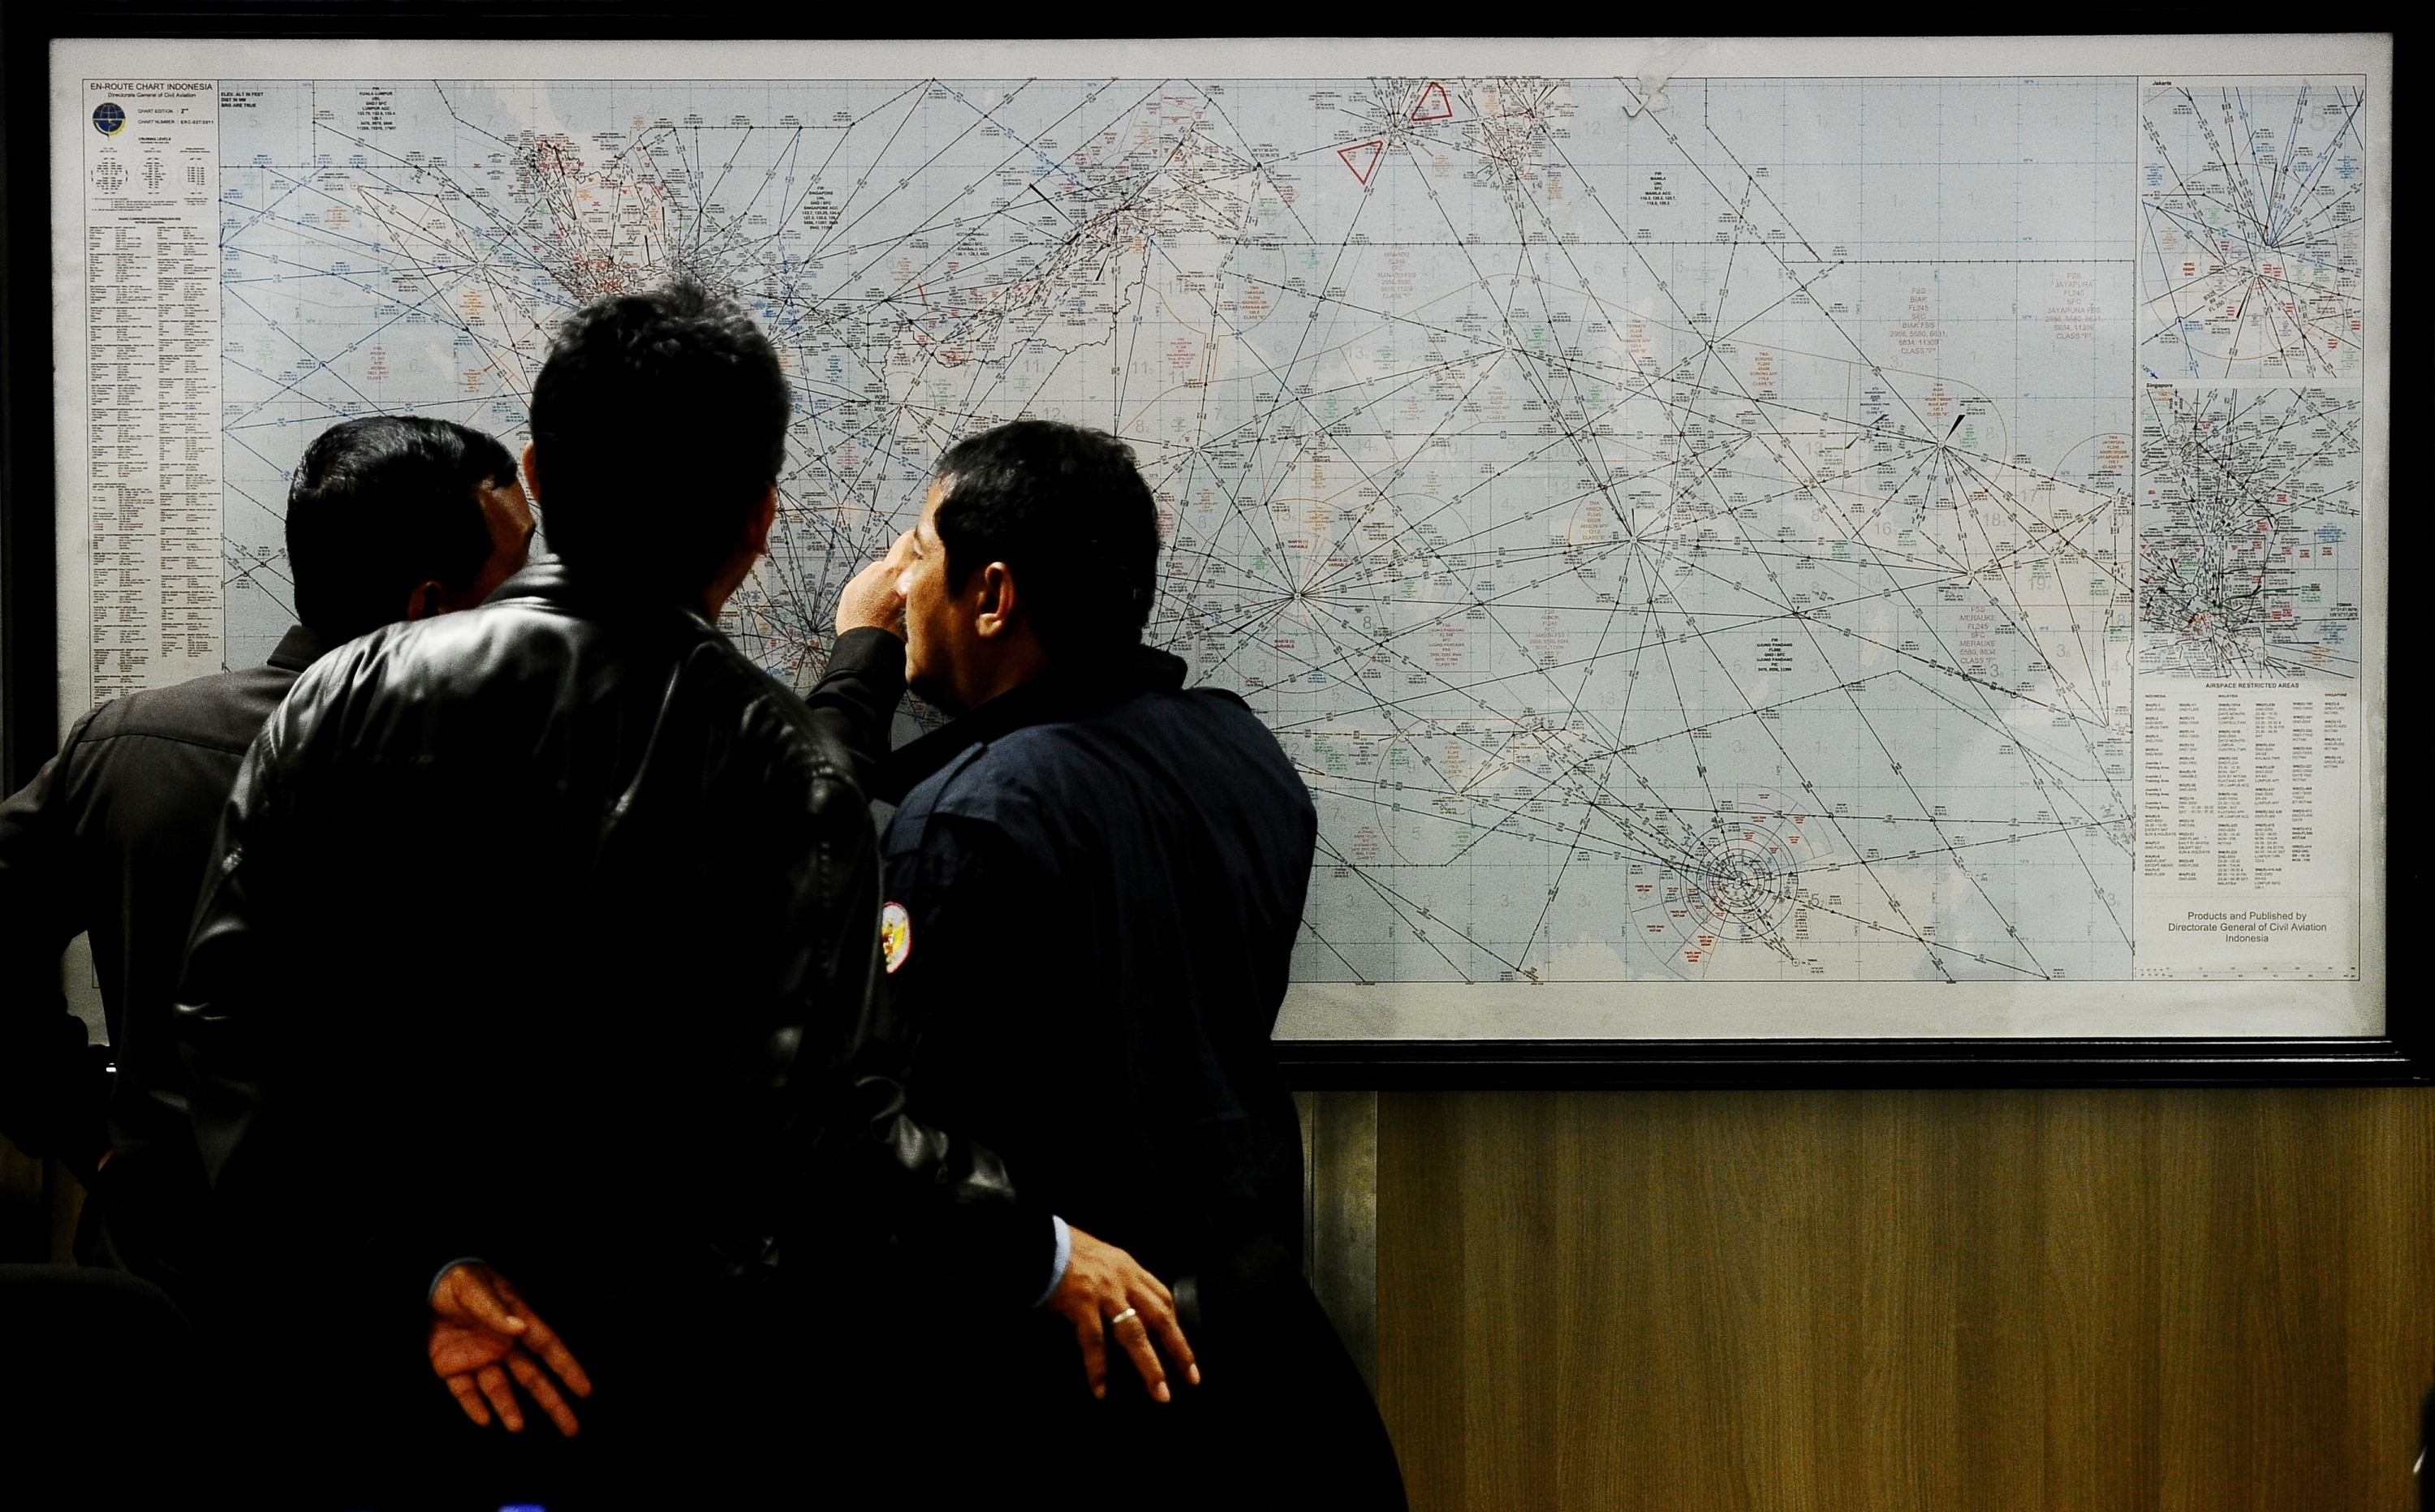 Indonesia Search and Rescue officers inspect the operational air navigation map during the investigation of missing AirAsia Flight QZ8501 at the crisis centre of Juanda International Airport Surabaya on Sunday.